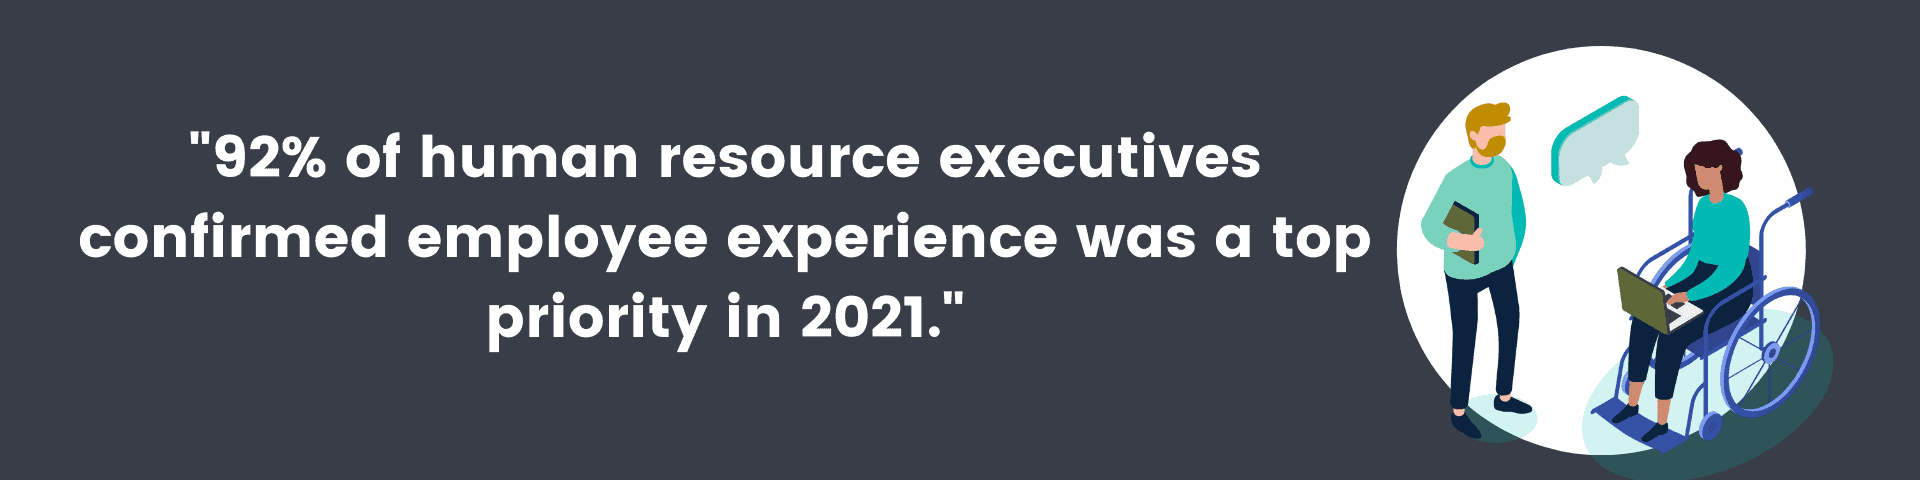 """""""92% of human resource executives confirmed employee experience was a top priority in 2021."""""""